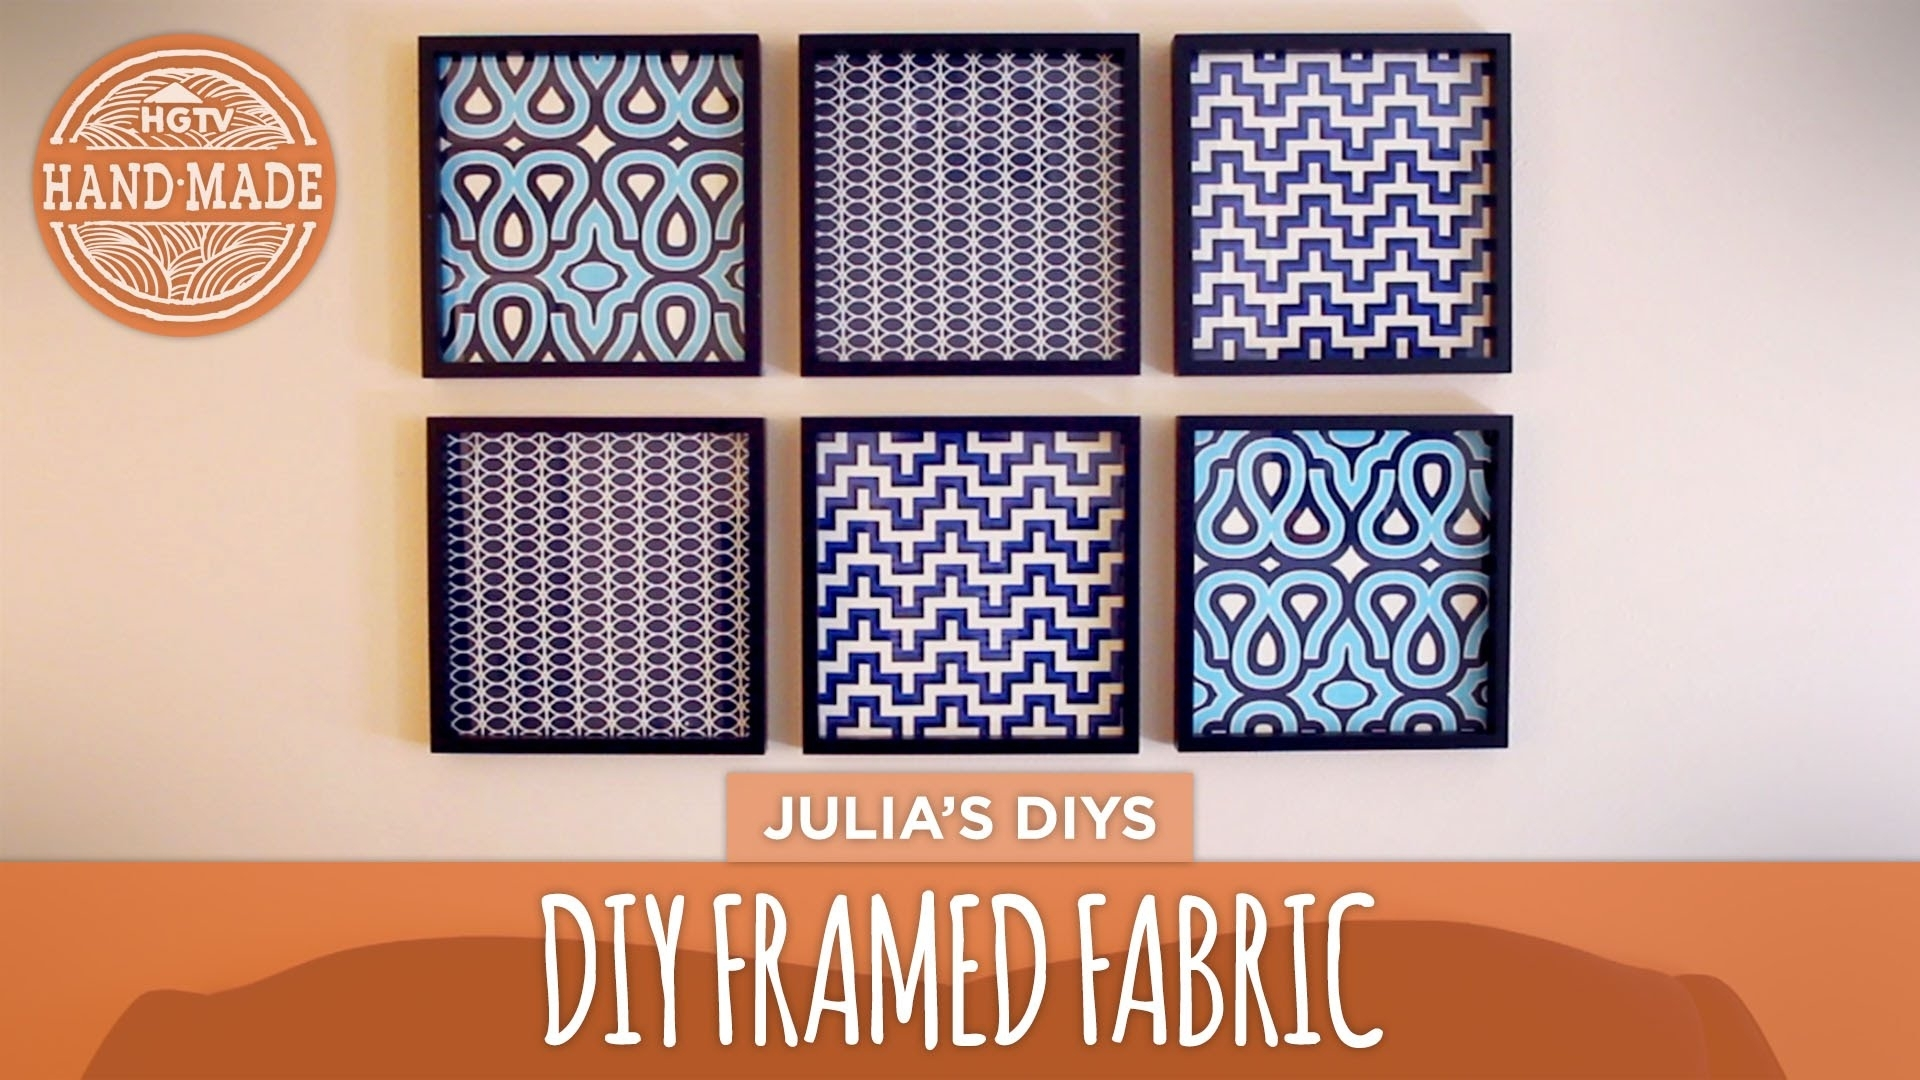 Diy Framed Fabric Gallery Wall – Hgtv Handmade – Youtube With Regard To Best And Newest Cheap Fabric Wall Art (View 4 of 15)